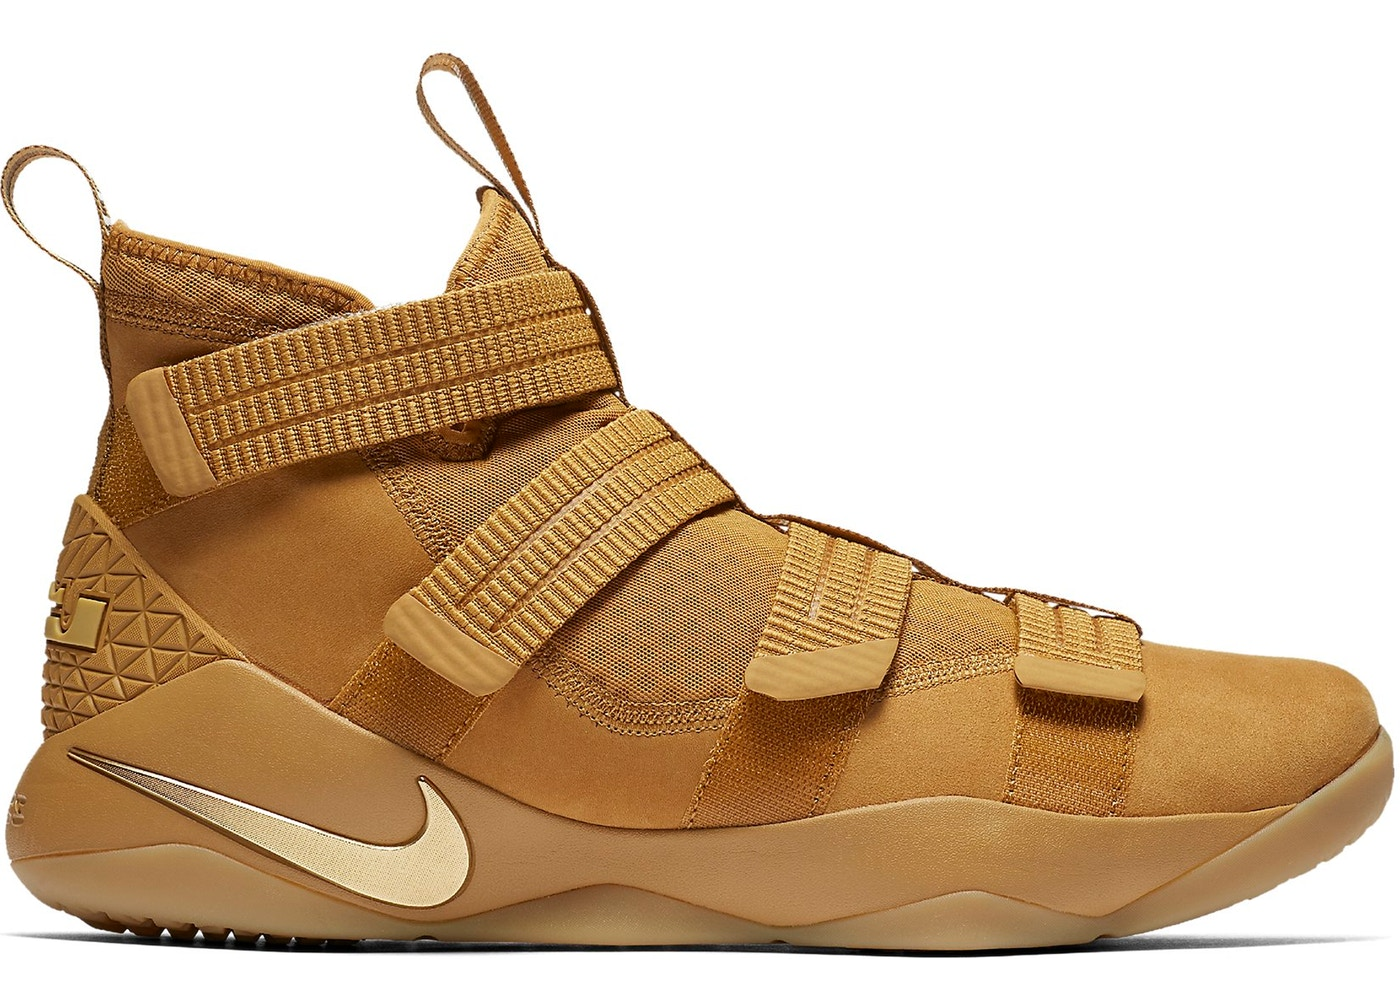 the best attitude 7cd81 2c27d LeBron Zoom Soldier 11 Wheat